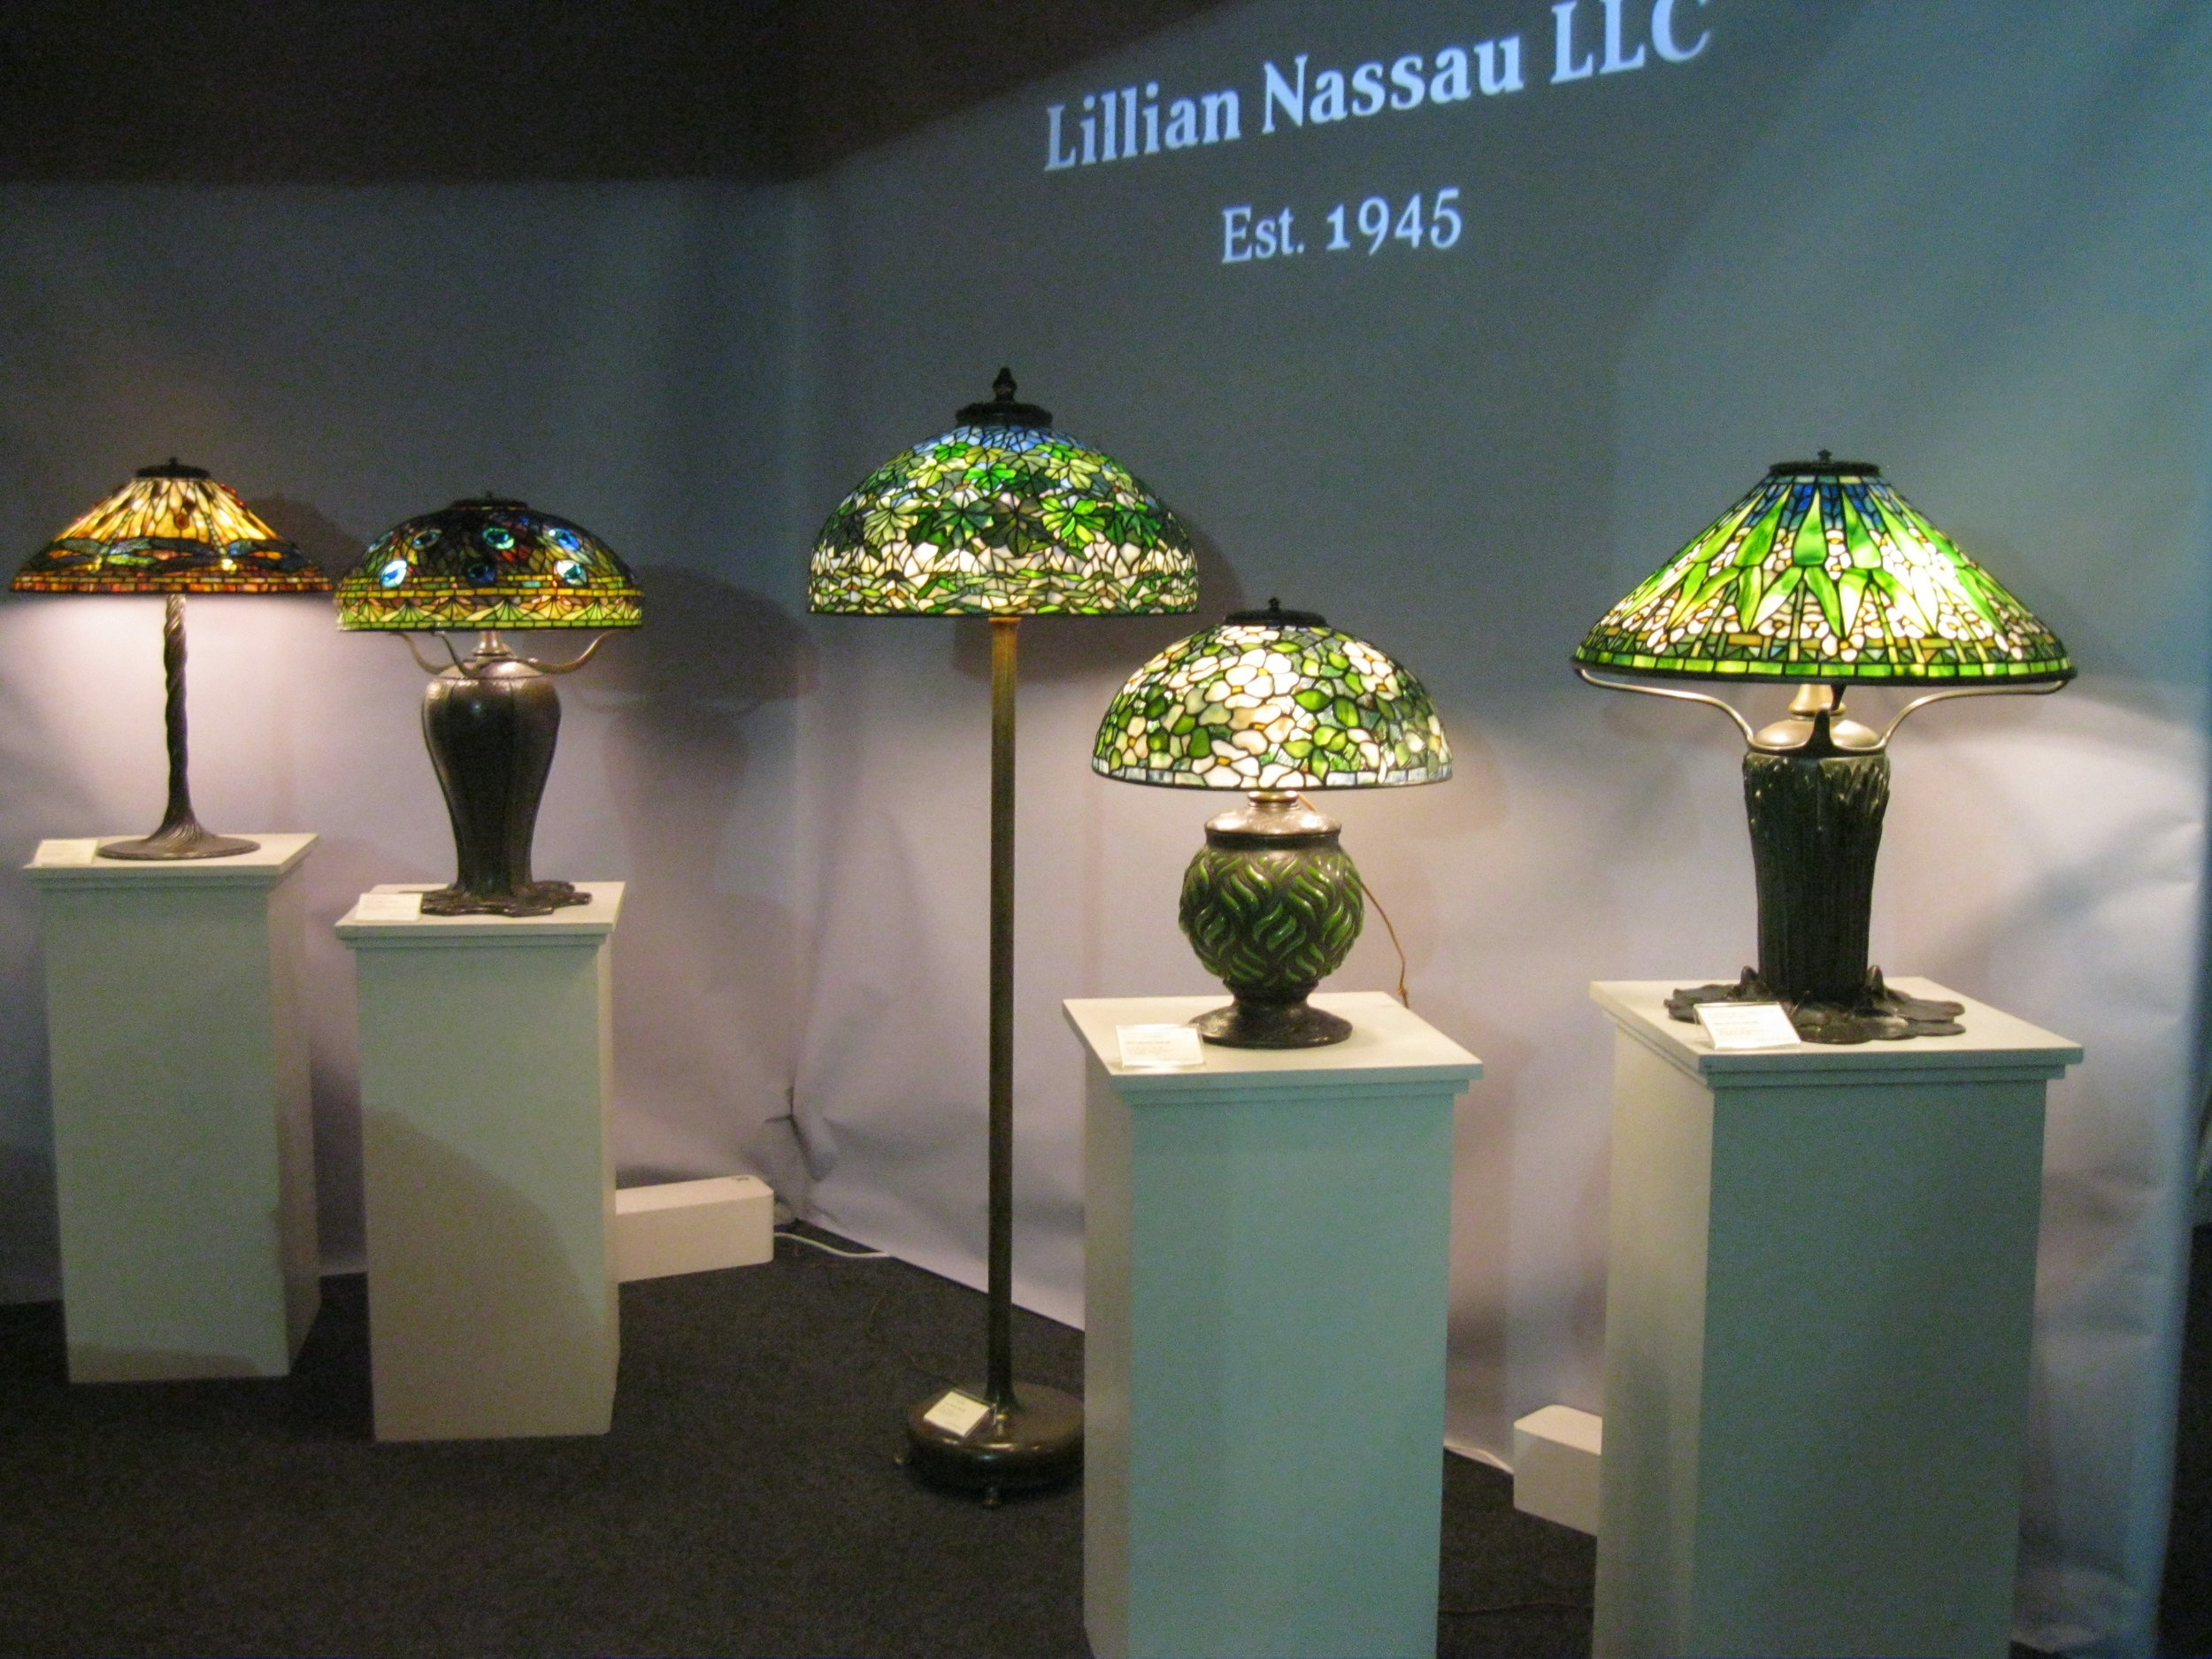 The booth of Lillian Nassau